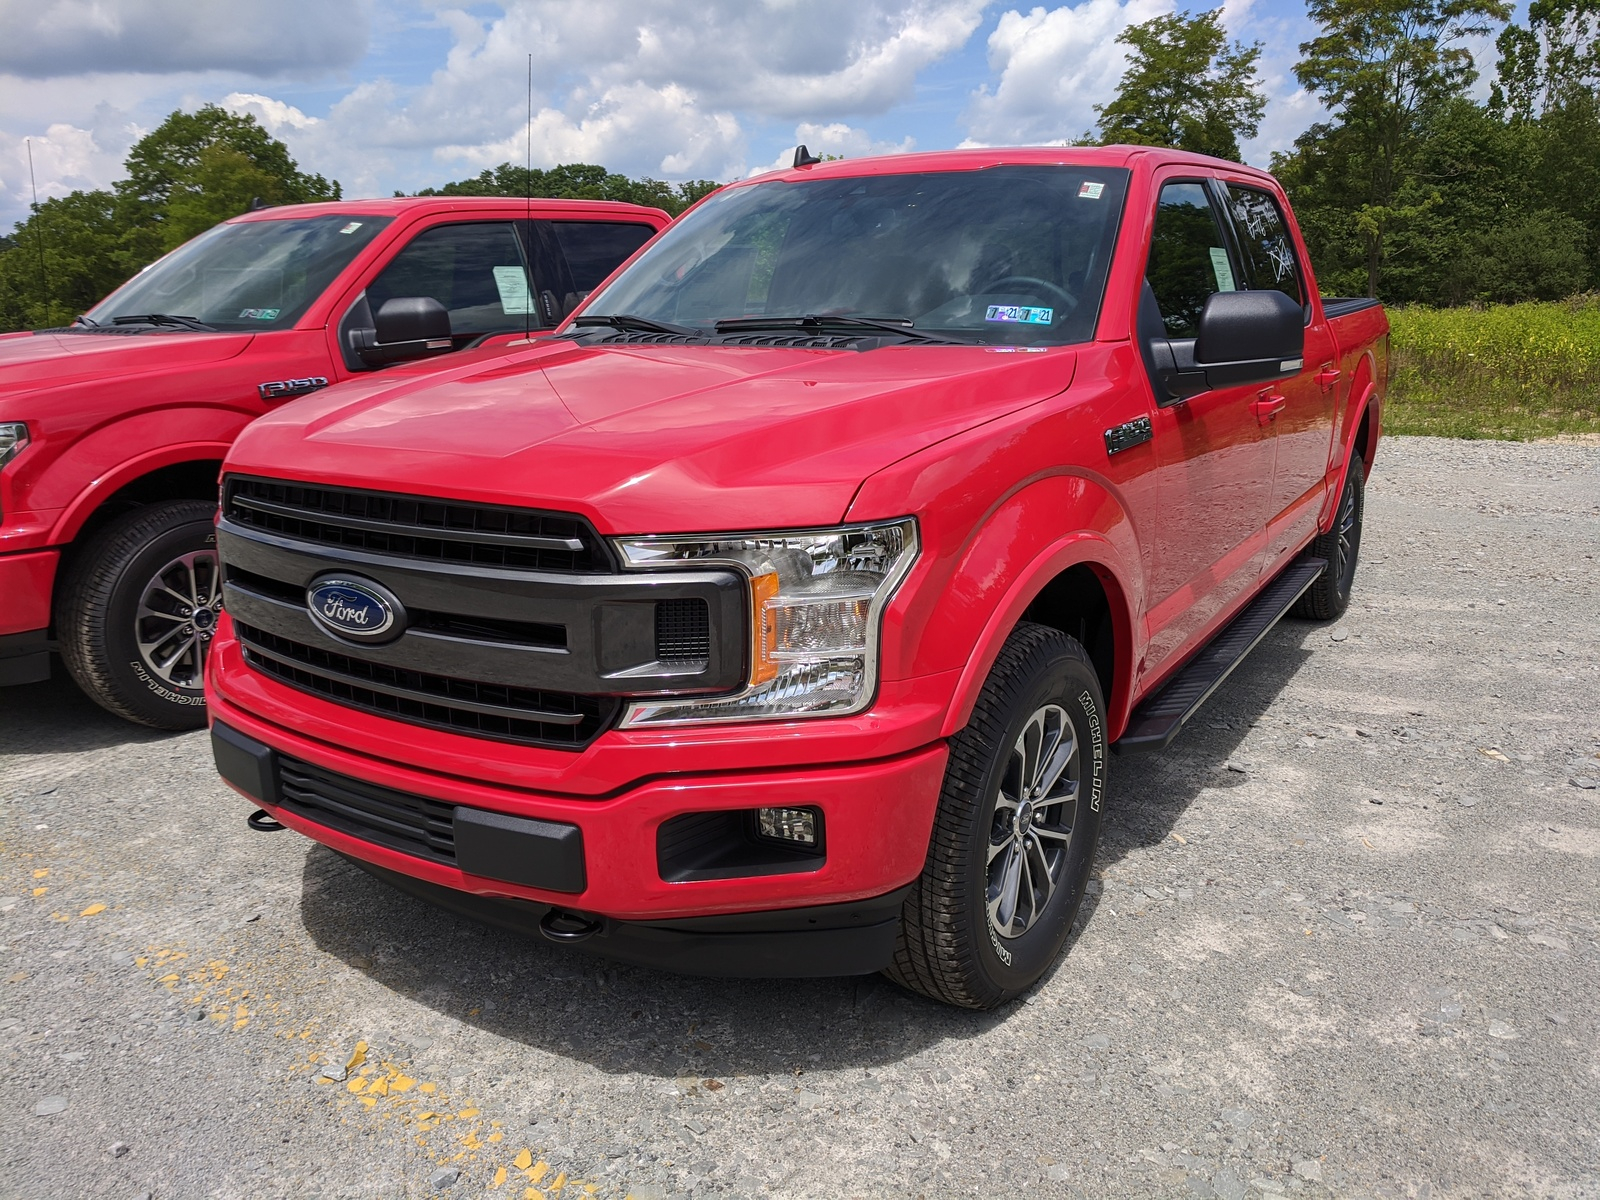 New 2020 Ford F 150 XLT Crew Cab Pickup In Race Red